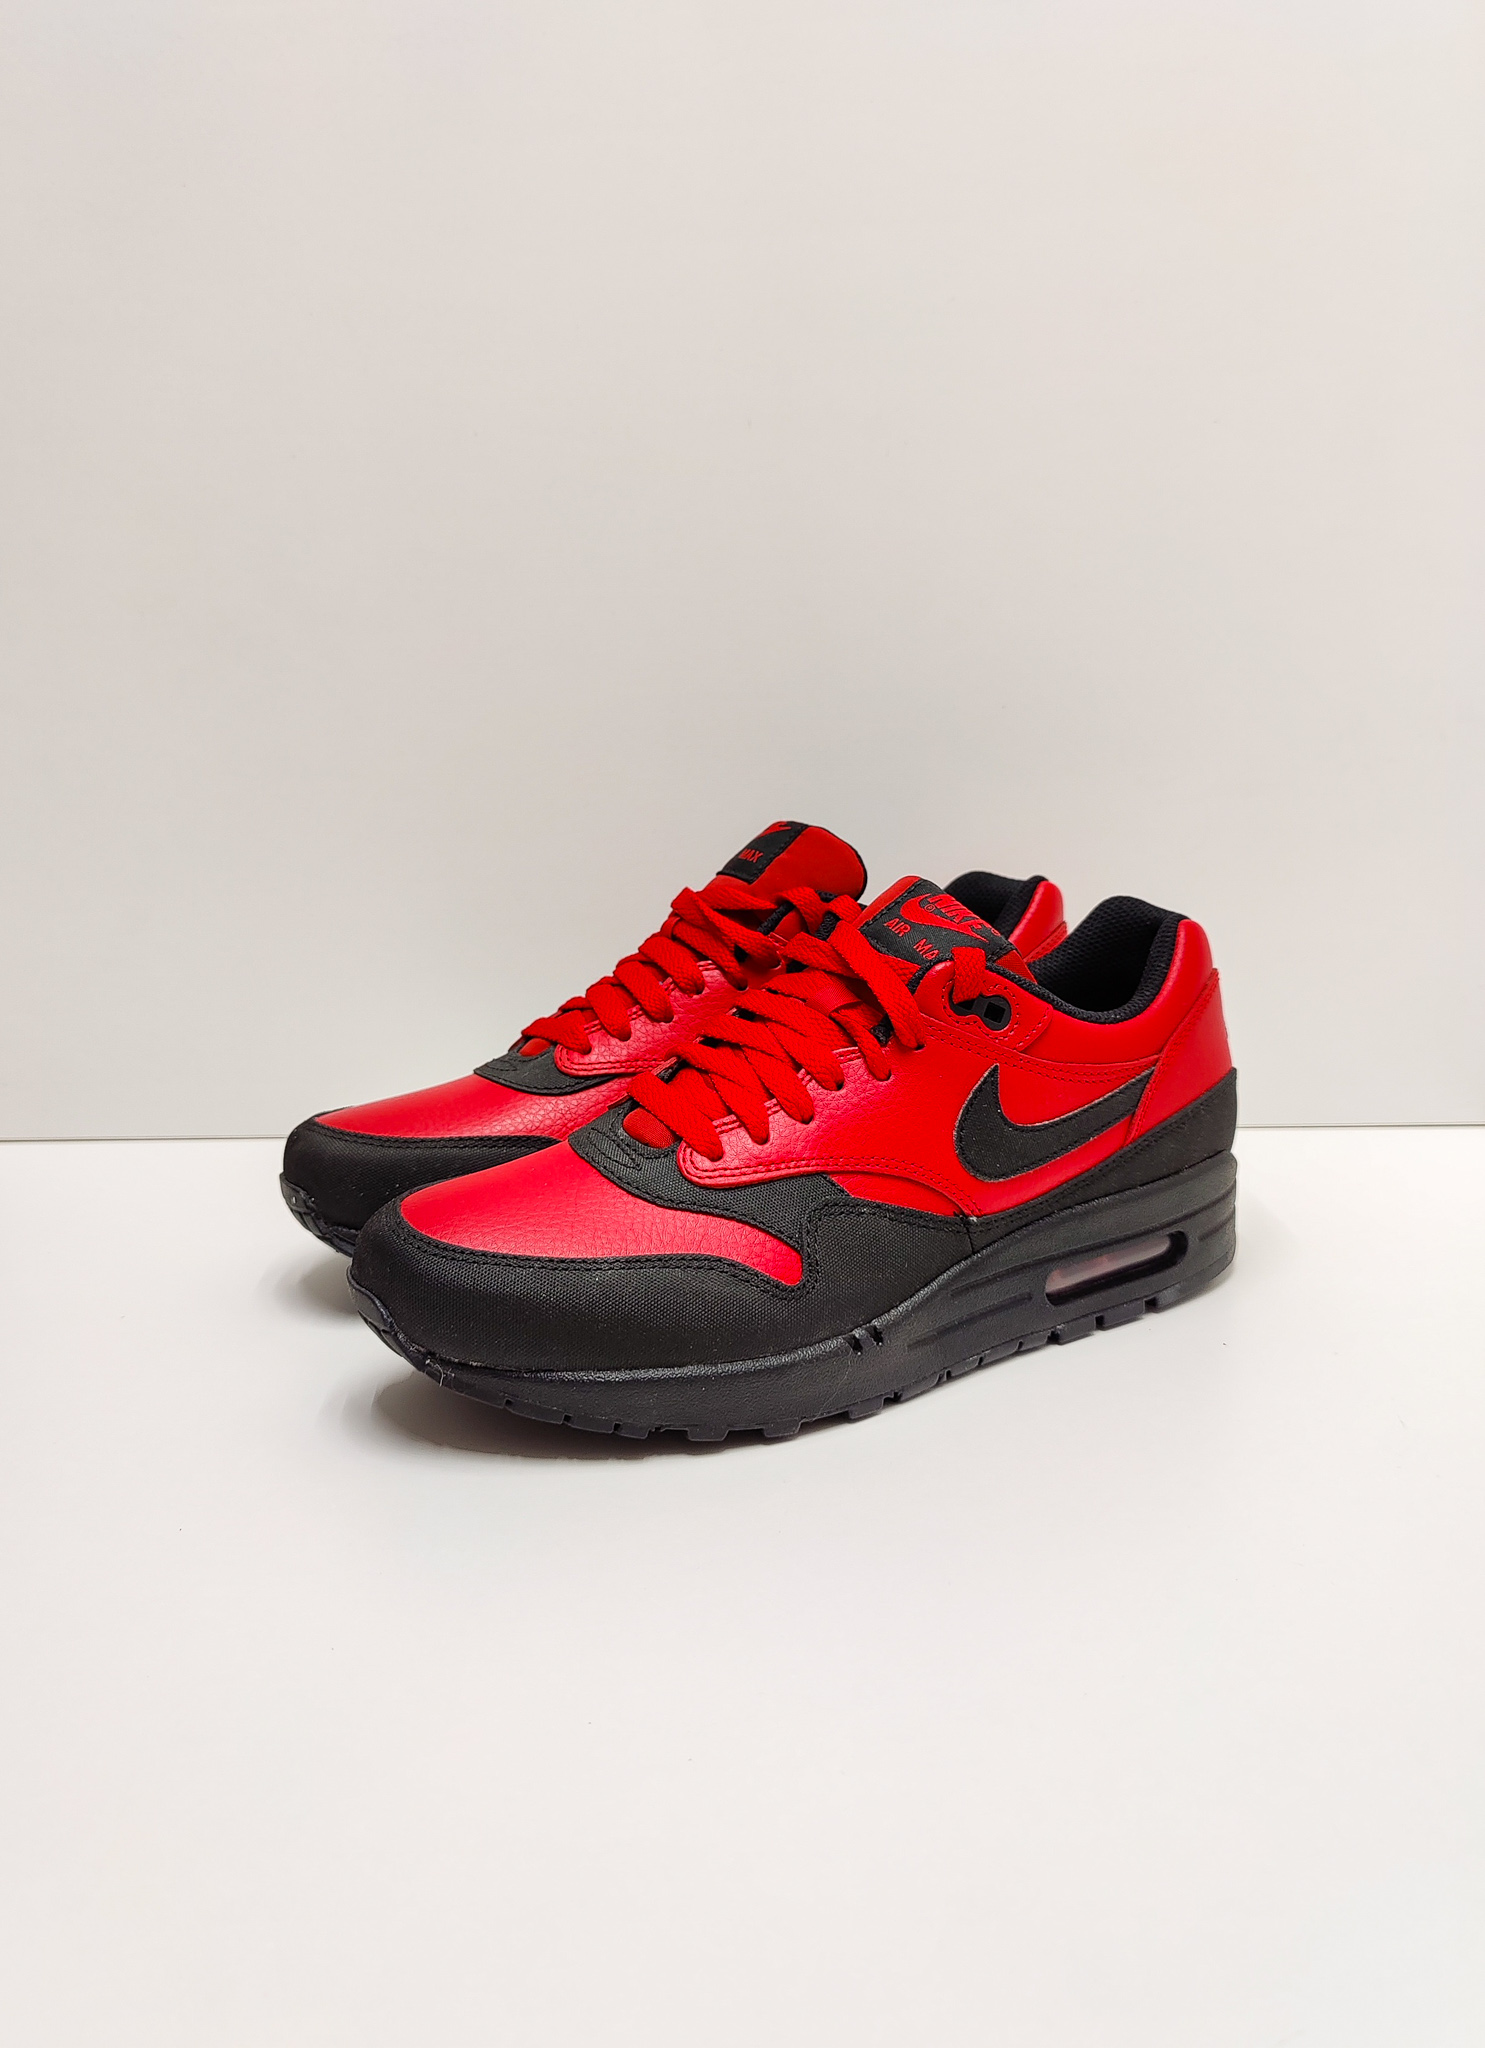 Nike Air Max 1 Leather Premium Gym Red Black